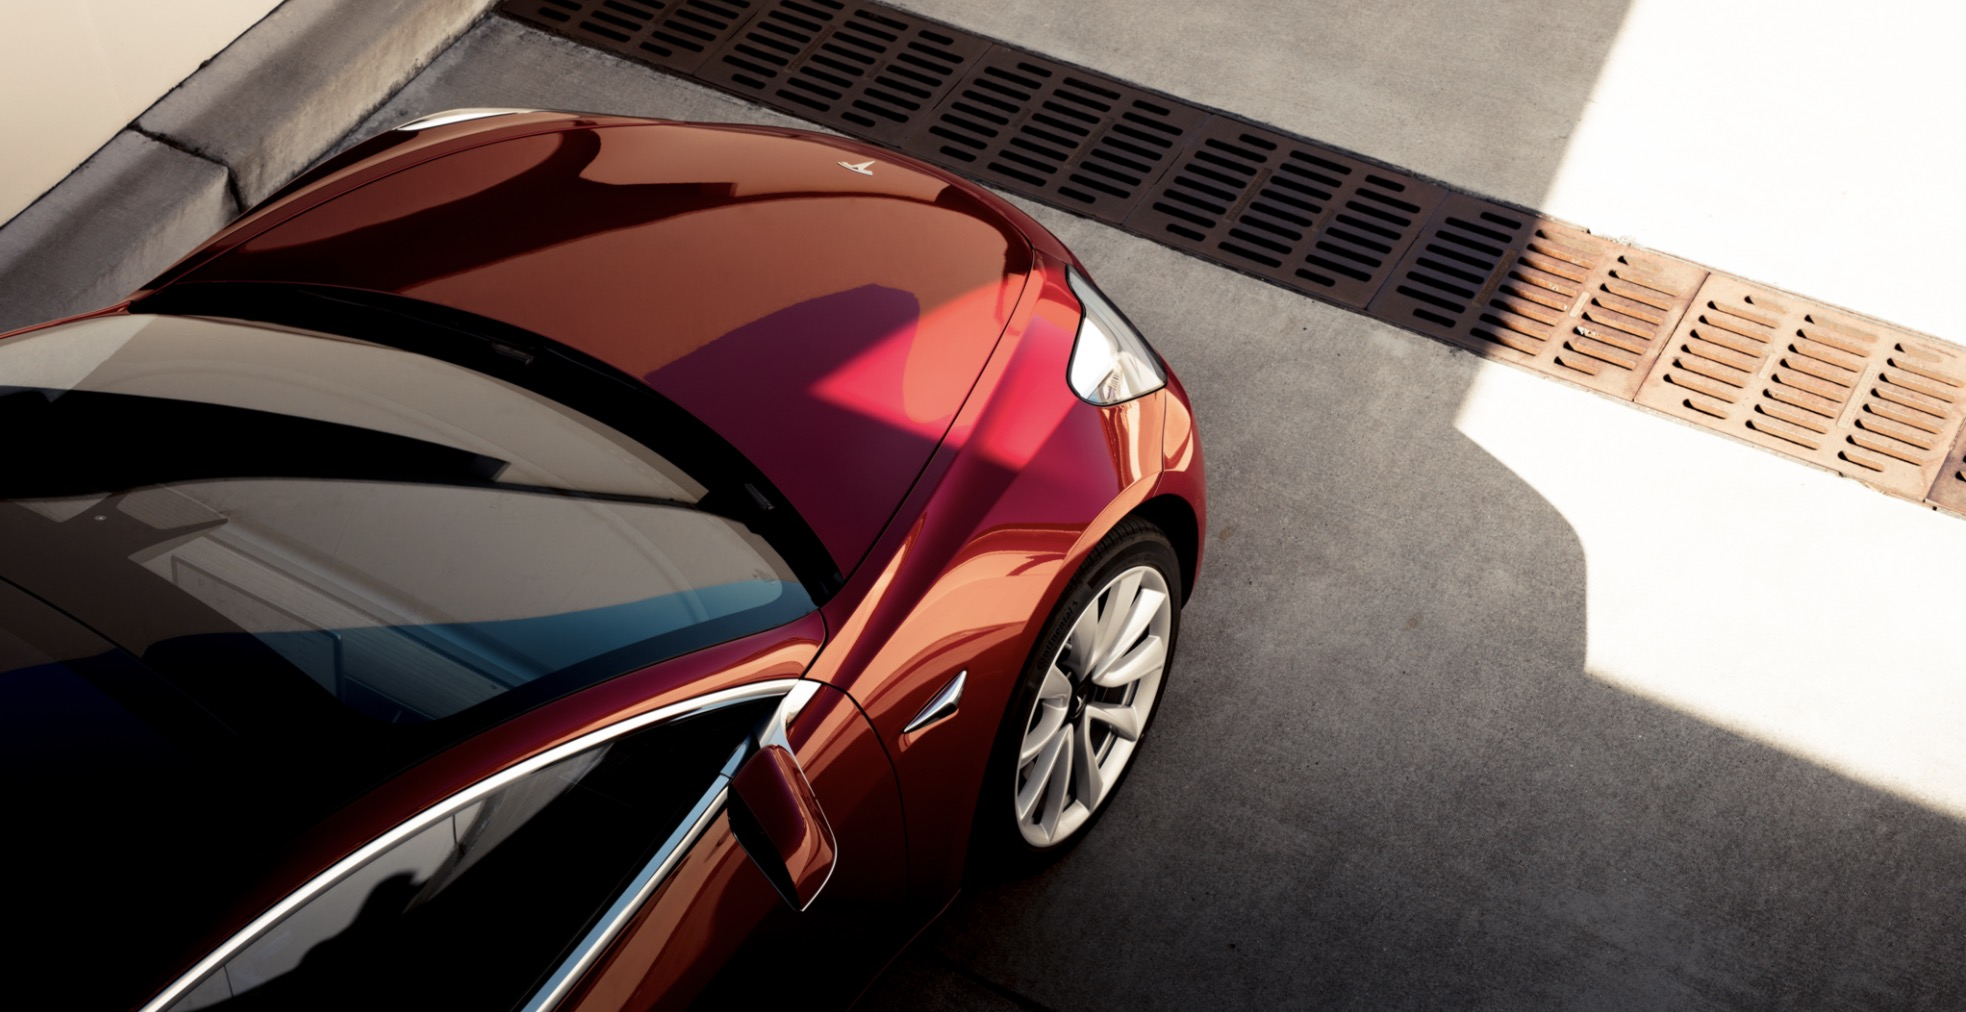 Tesla's $35,000 Model 3 is still coming and with a new battery module design